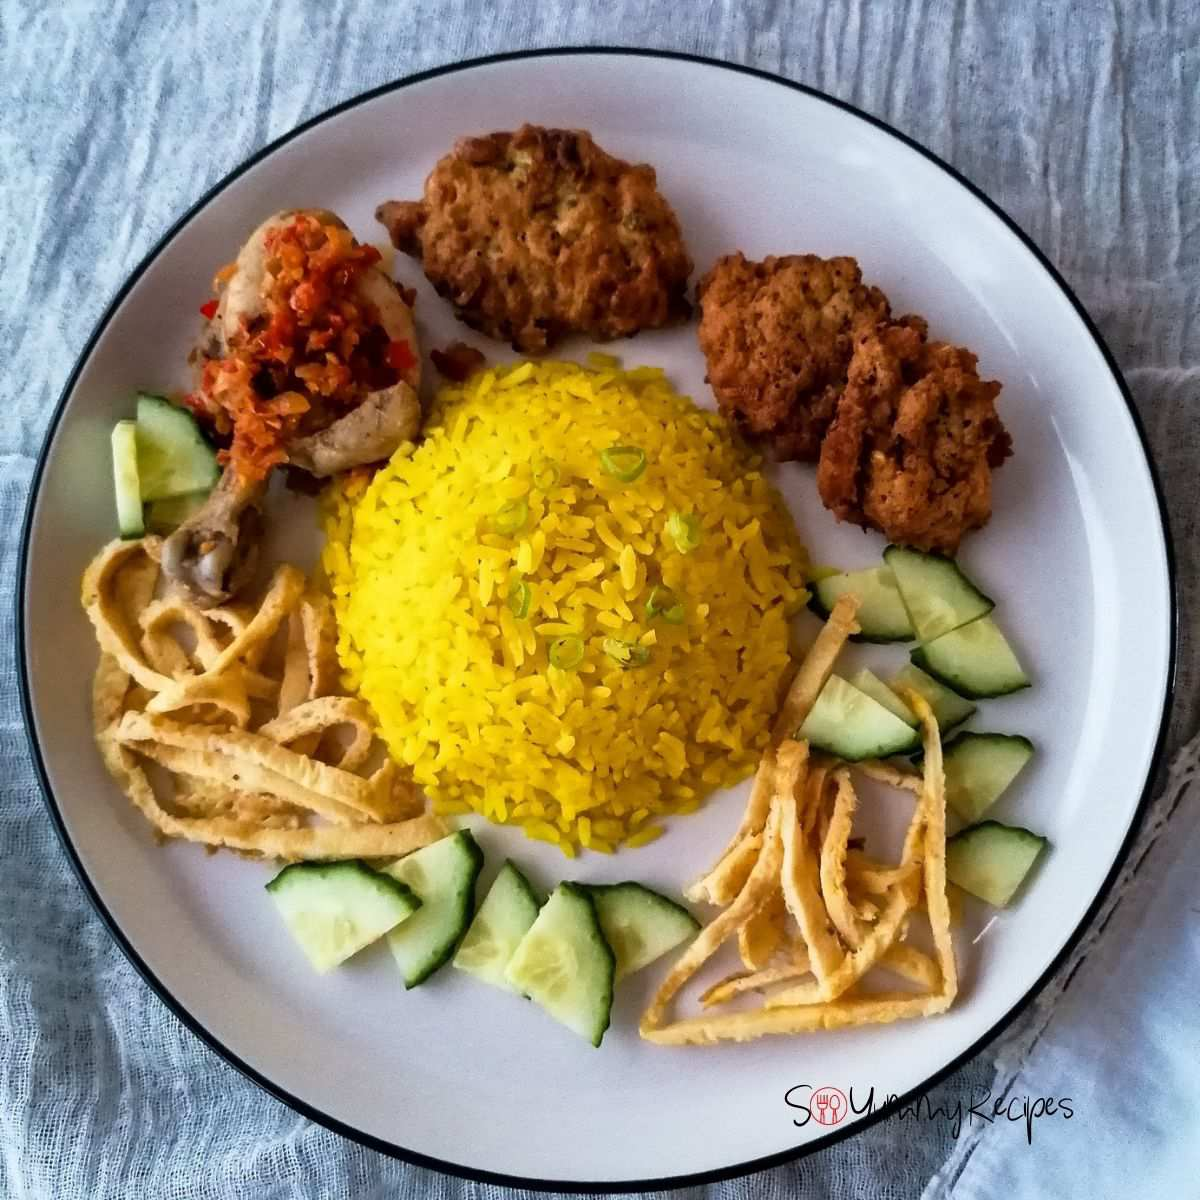 A plate of Nasi Kuning - the Indonesian yellow rice surrounded with chicken, fritters, slices of omelettes and cucumber